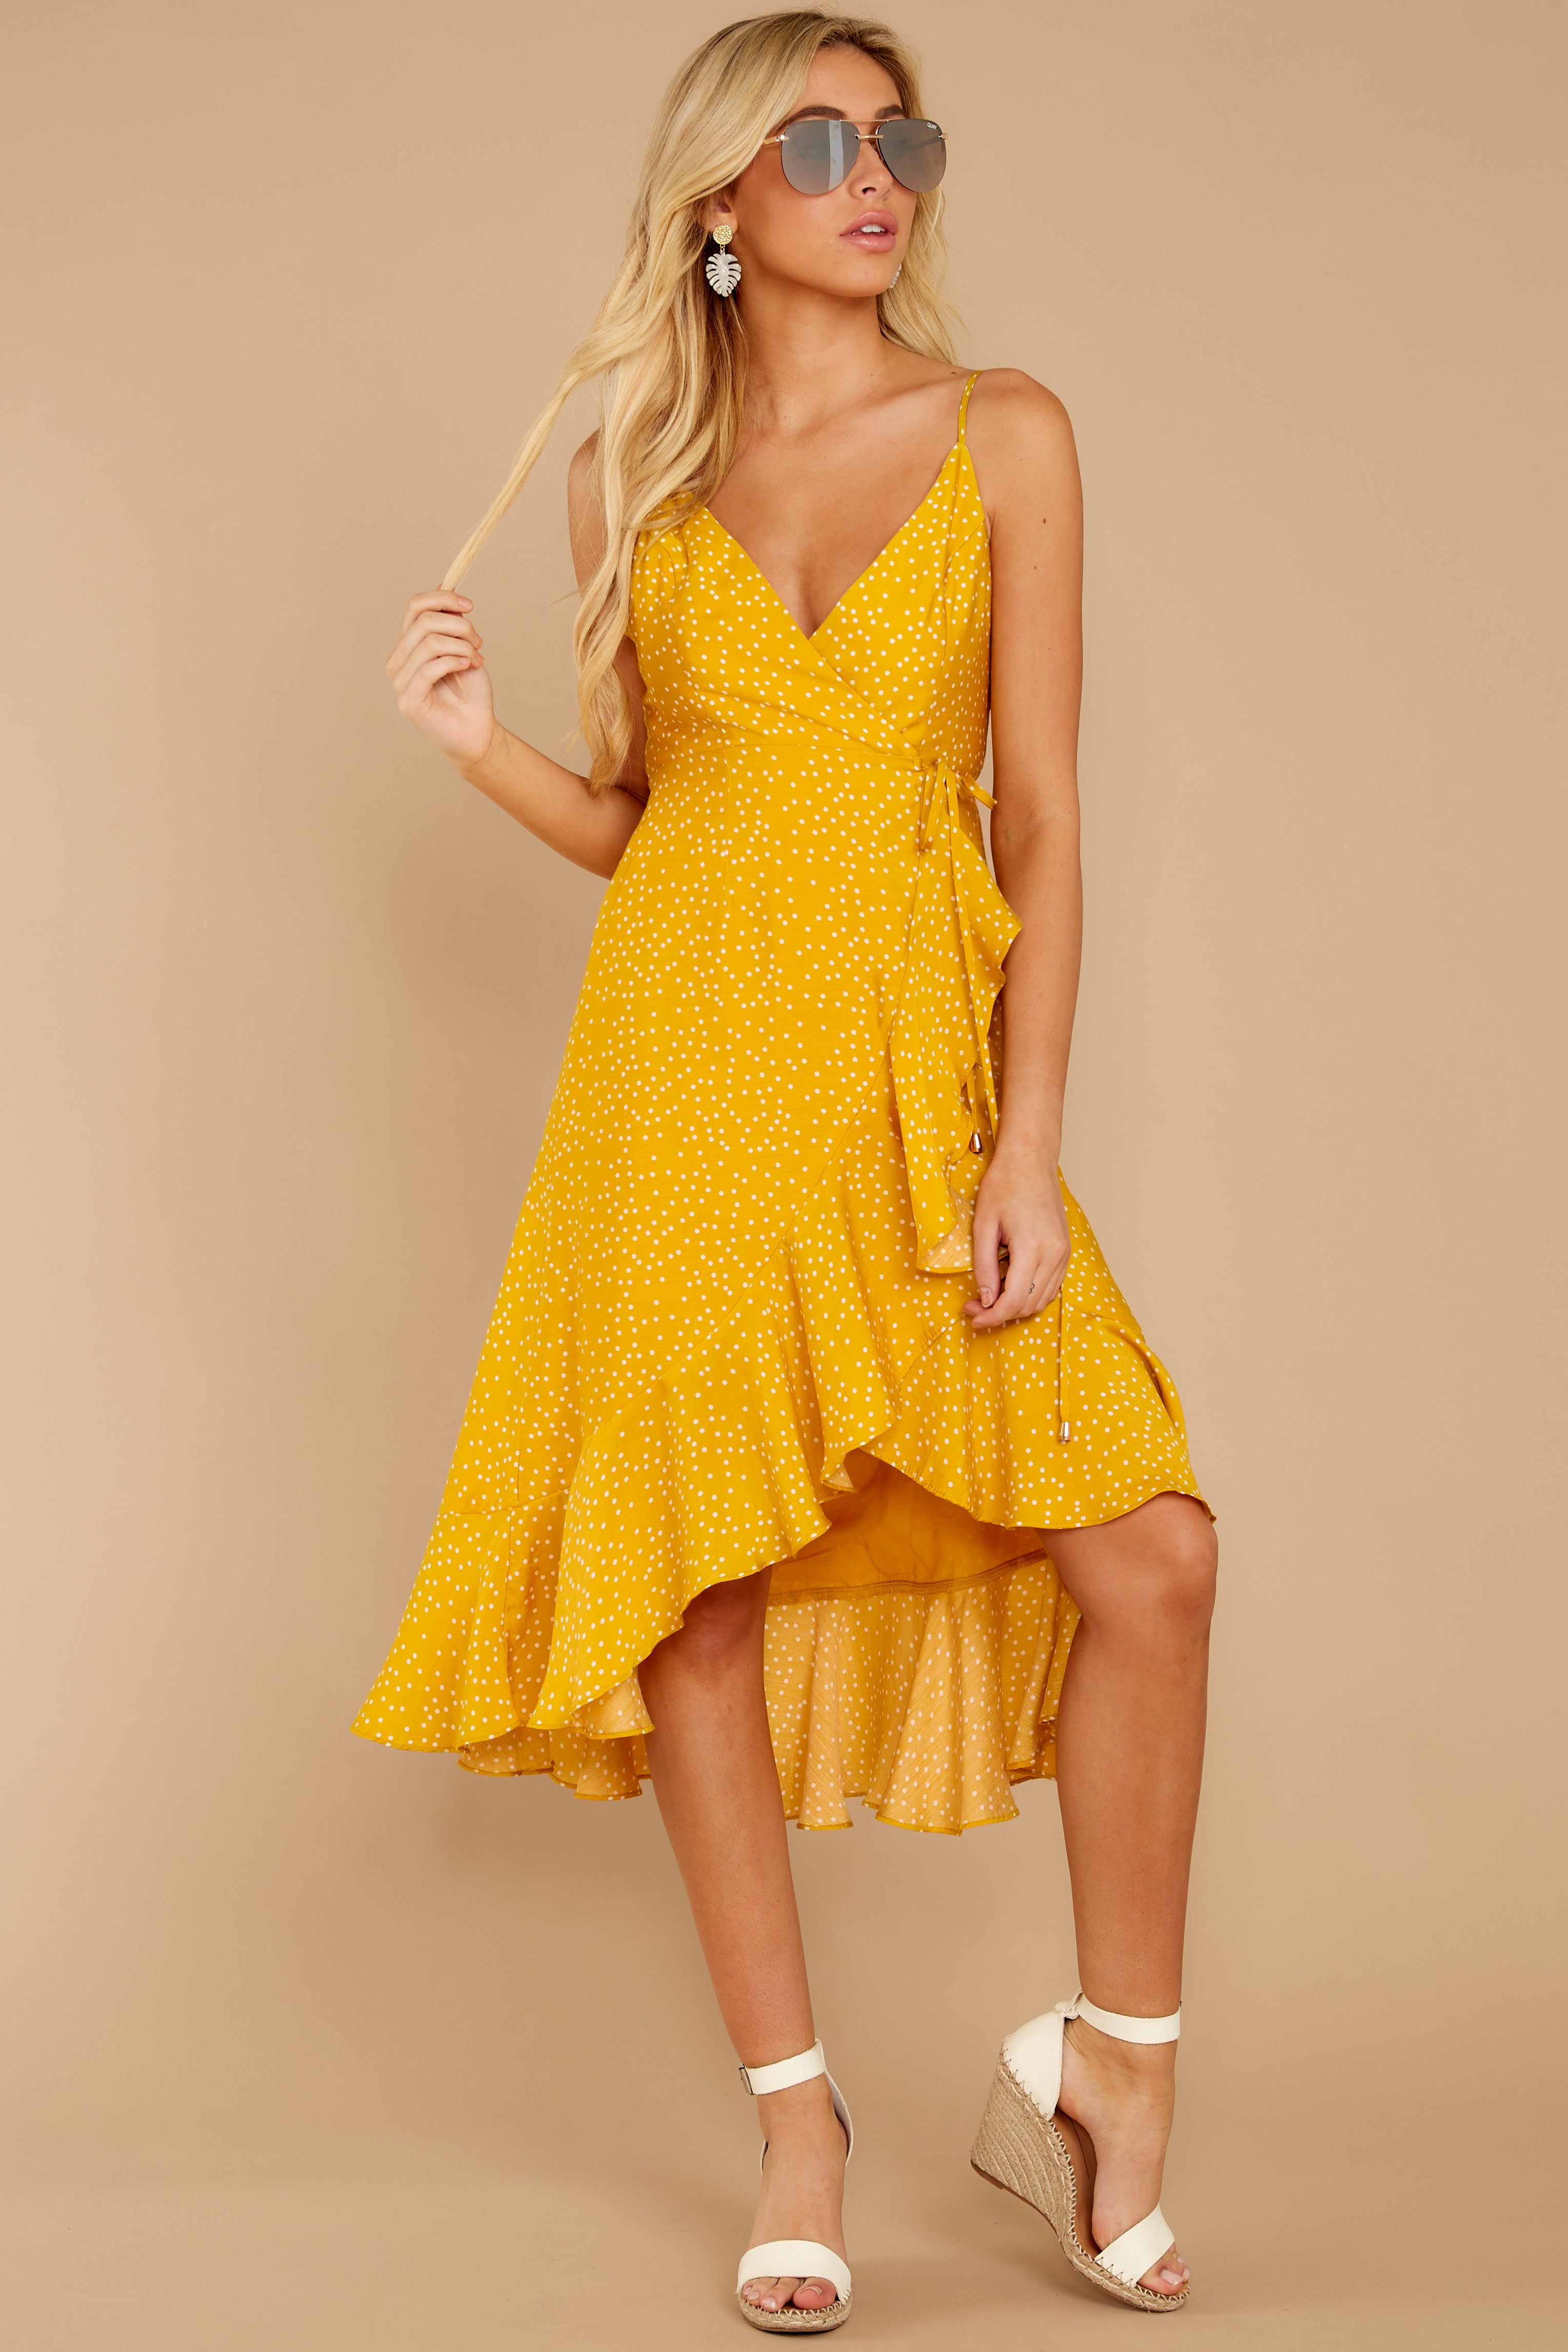 7 In The Meantime Mimosa Yellow Polka Dot Dress at reddressboutique.com